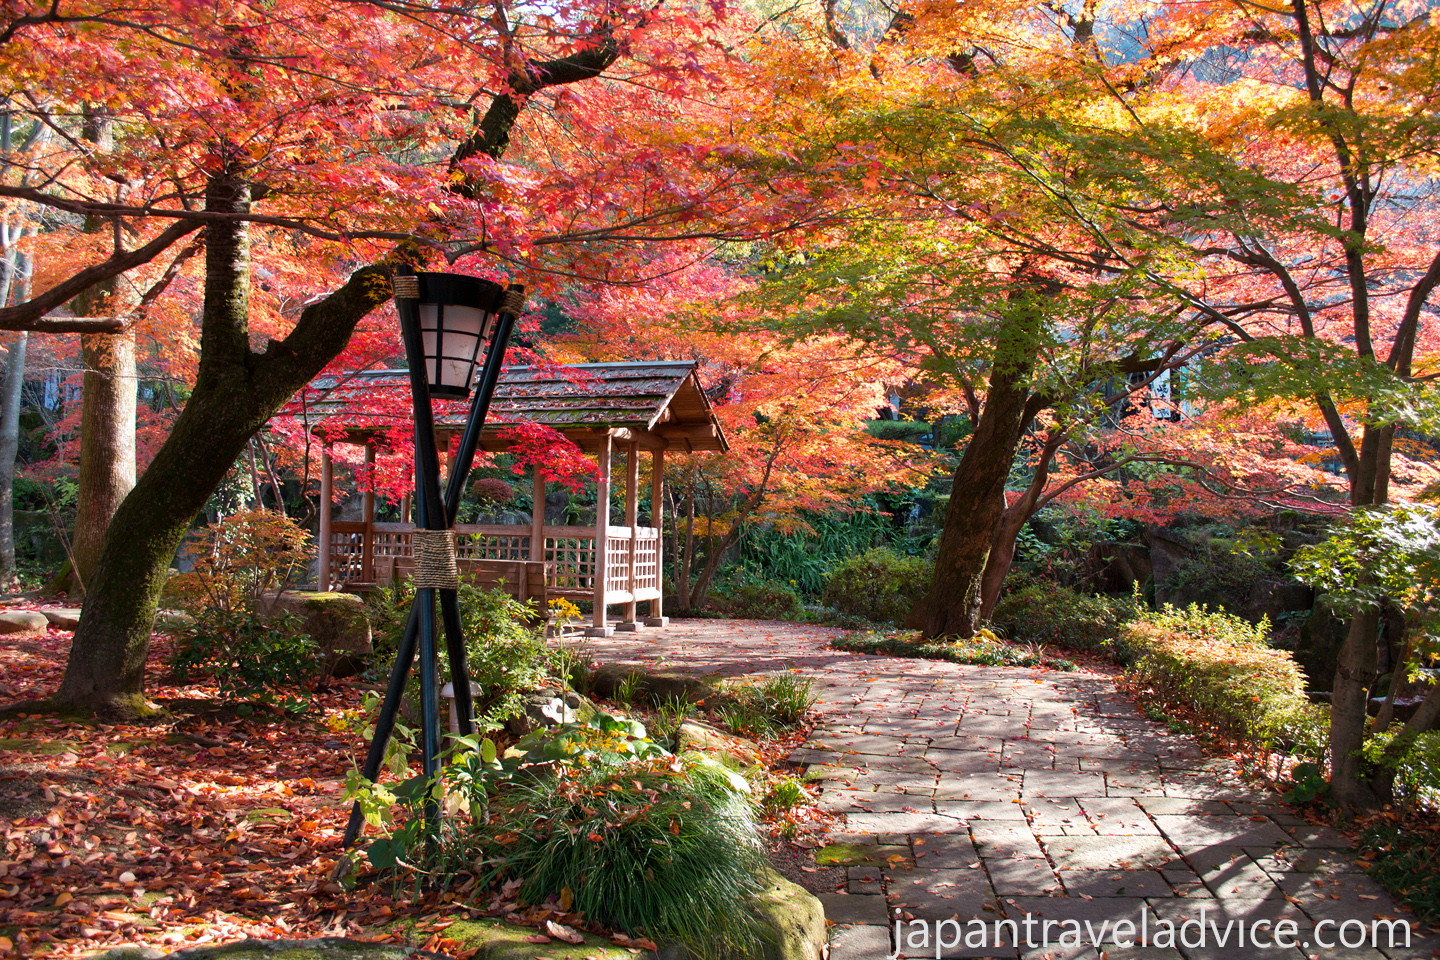 November Autumn Colours in Japan